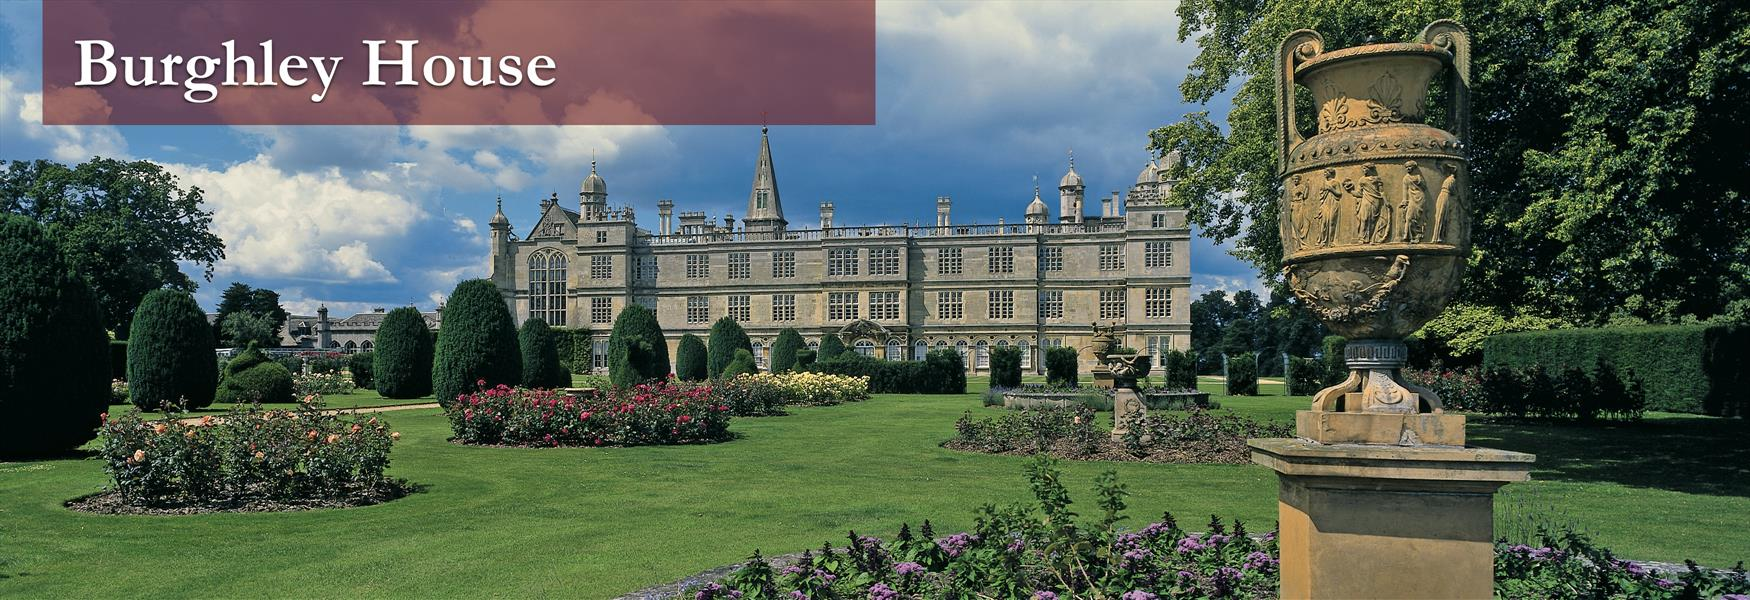 Photo of Burghley House Exterior